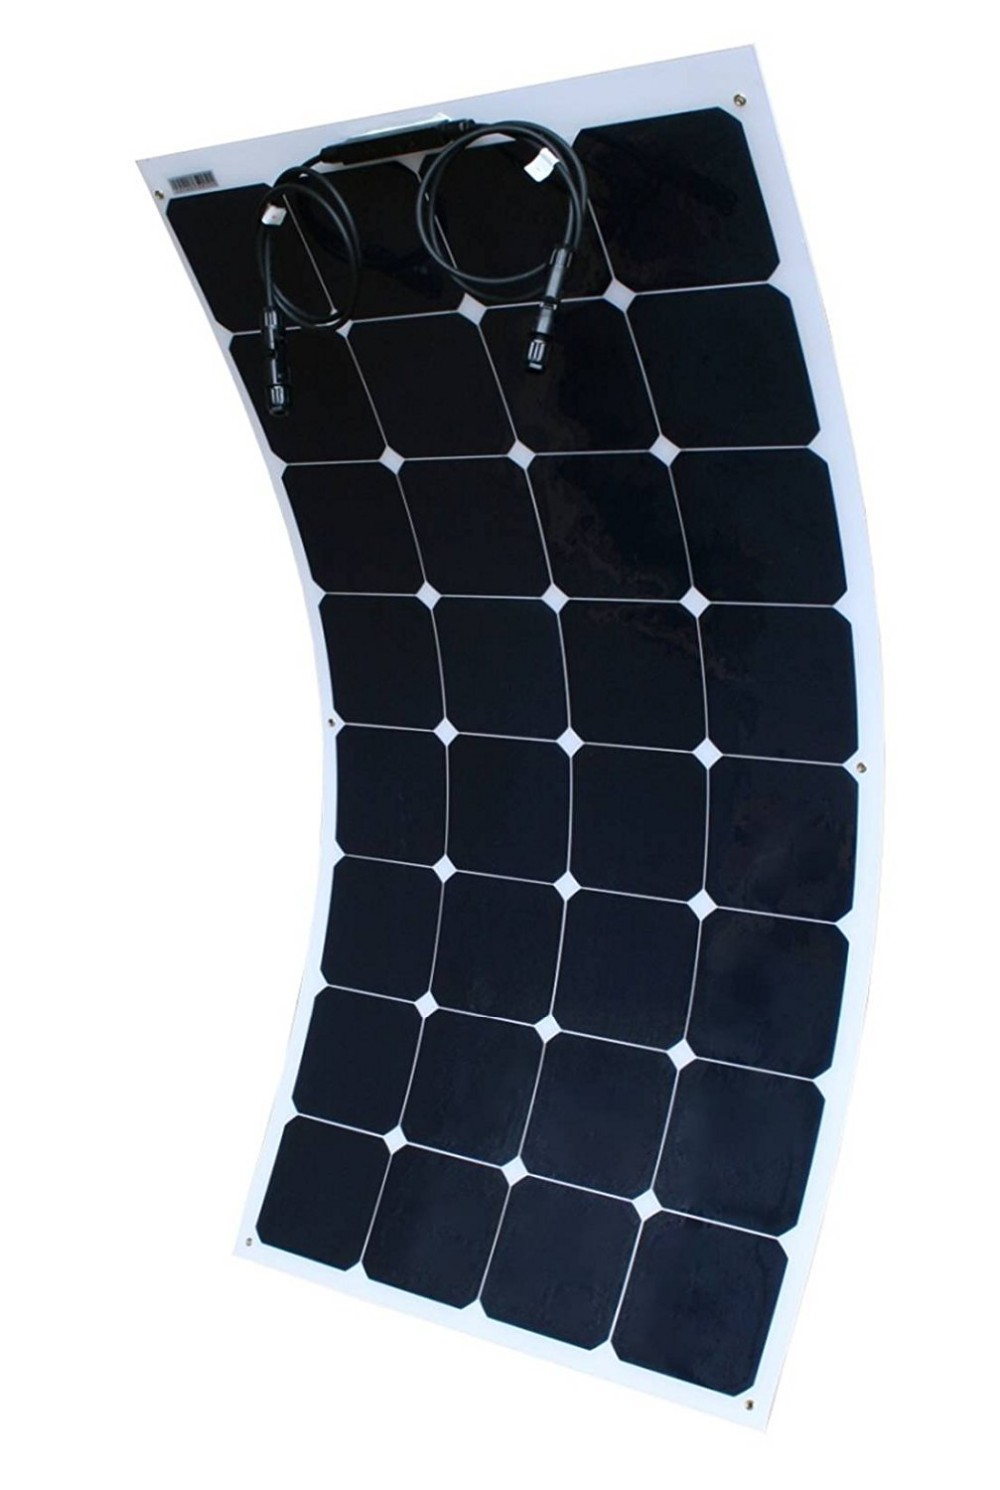 21.5% High Efficiency 100W Sunpower Back Contact Cells Semi Flexible Solar Panel for RV